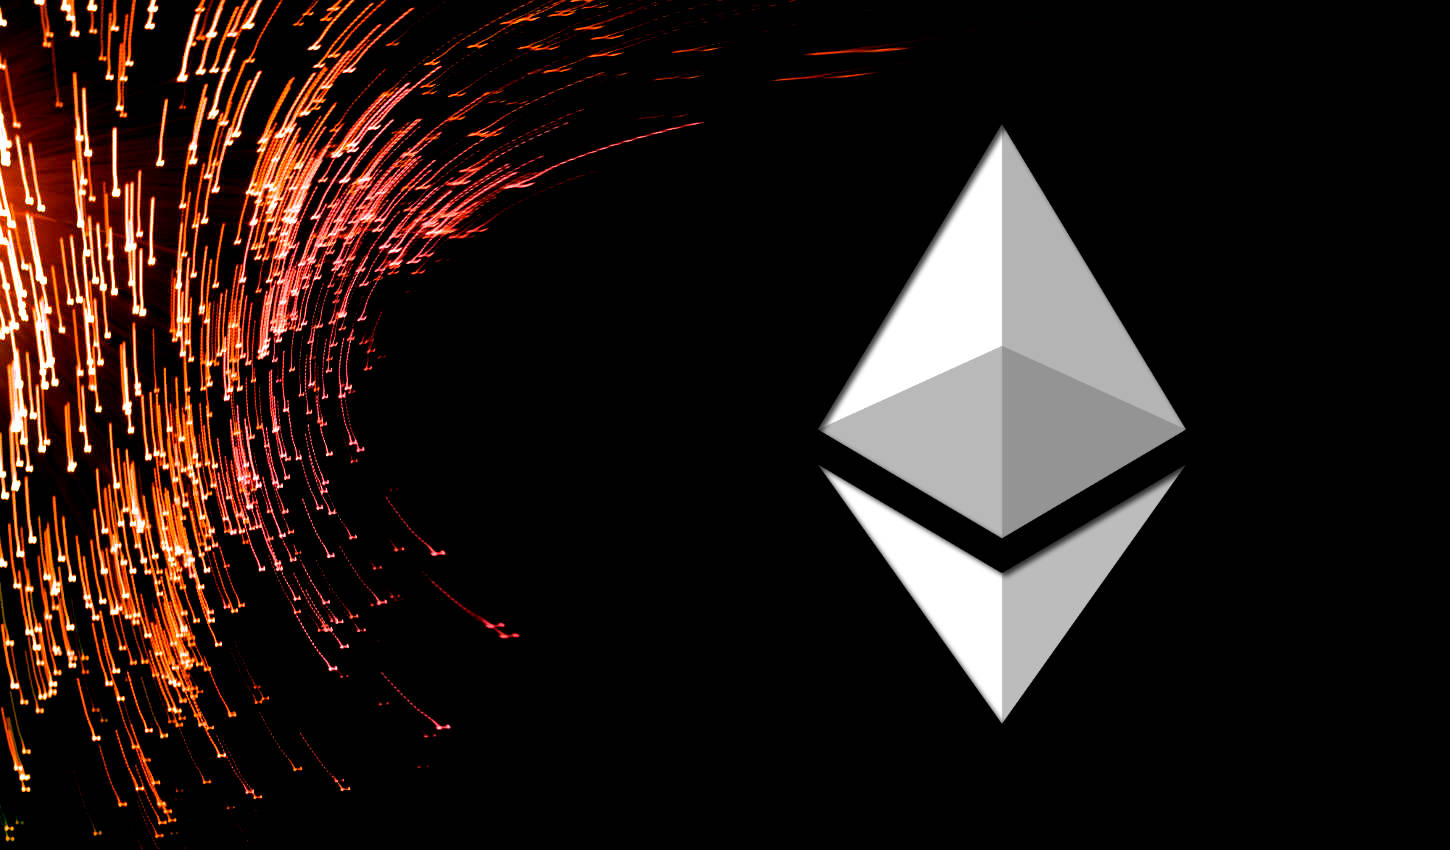 These Four Charts Show Ethereum's 'Ridiculous Growth' in Six Years: Crypto Veteran Spencer Noon